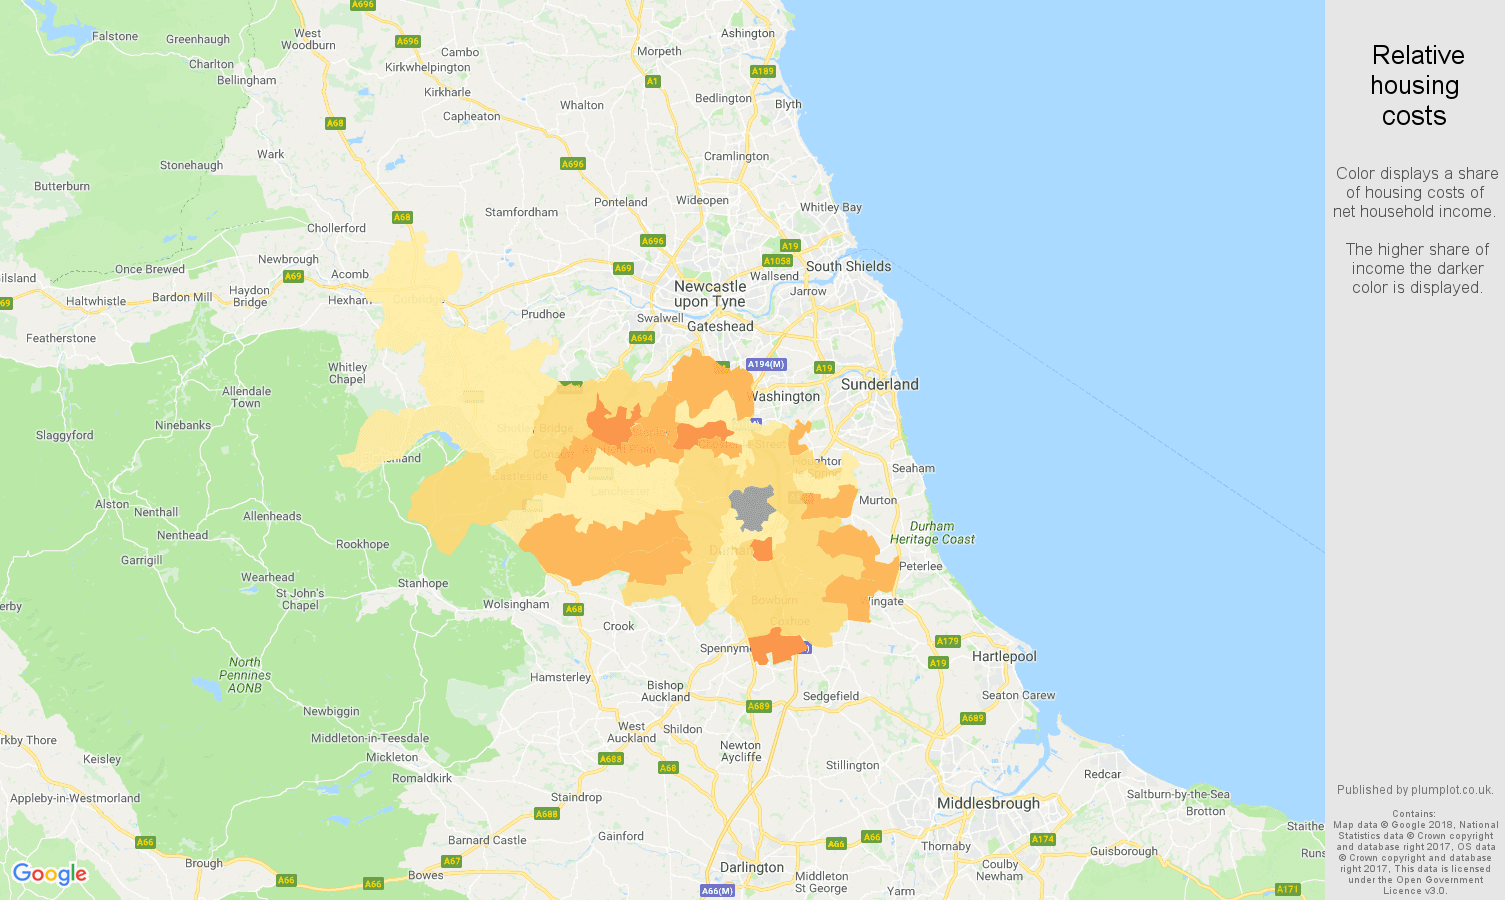 Durham relative housing costs map